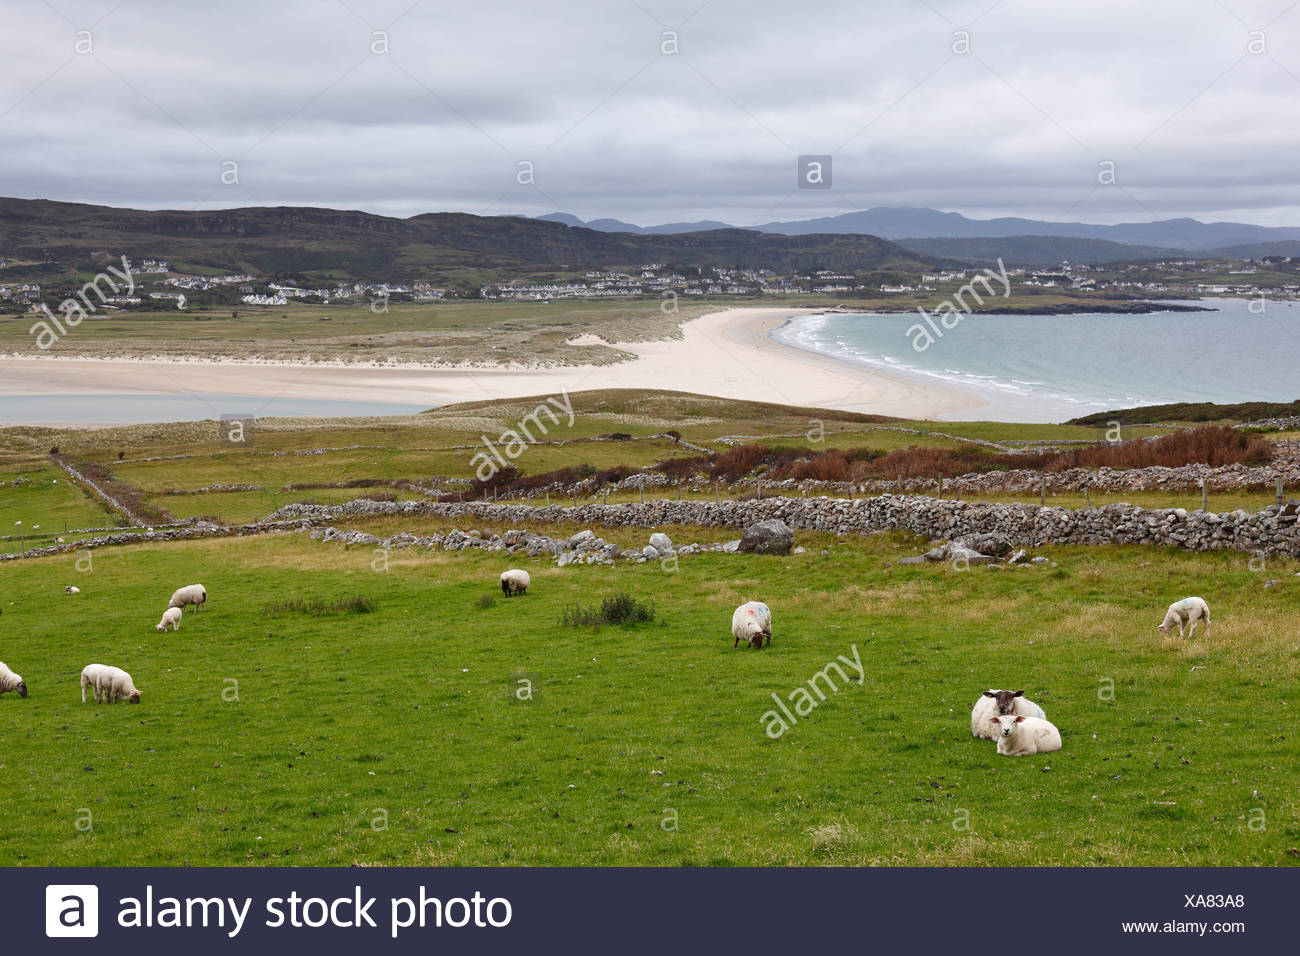 View from Horn Head over Dunfanaghy, County Donegal, Ireland, Europe - Stock Image